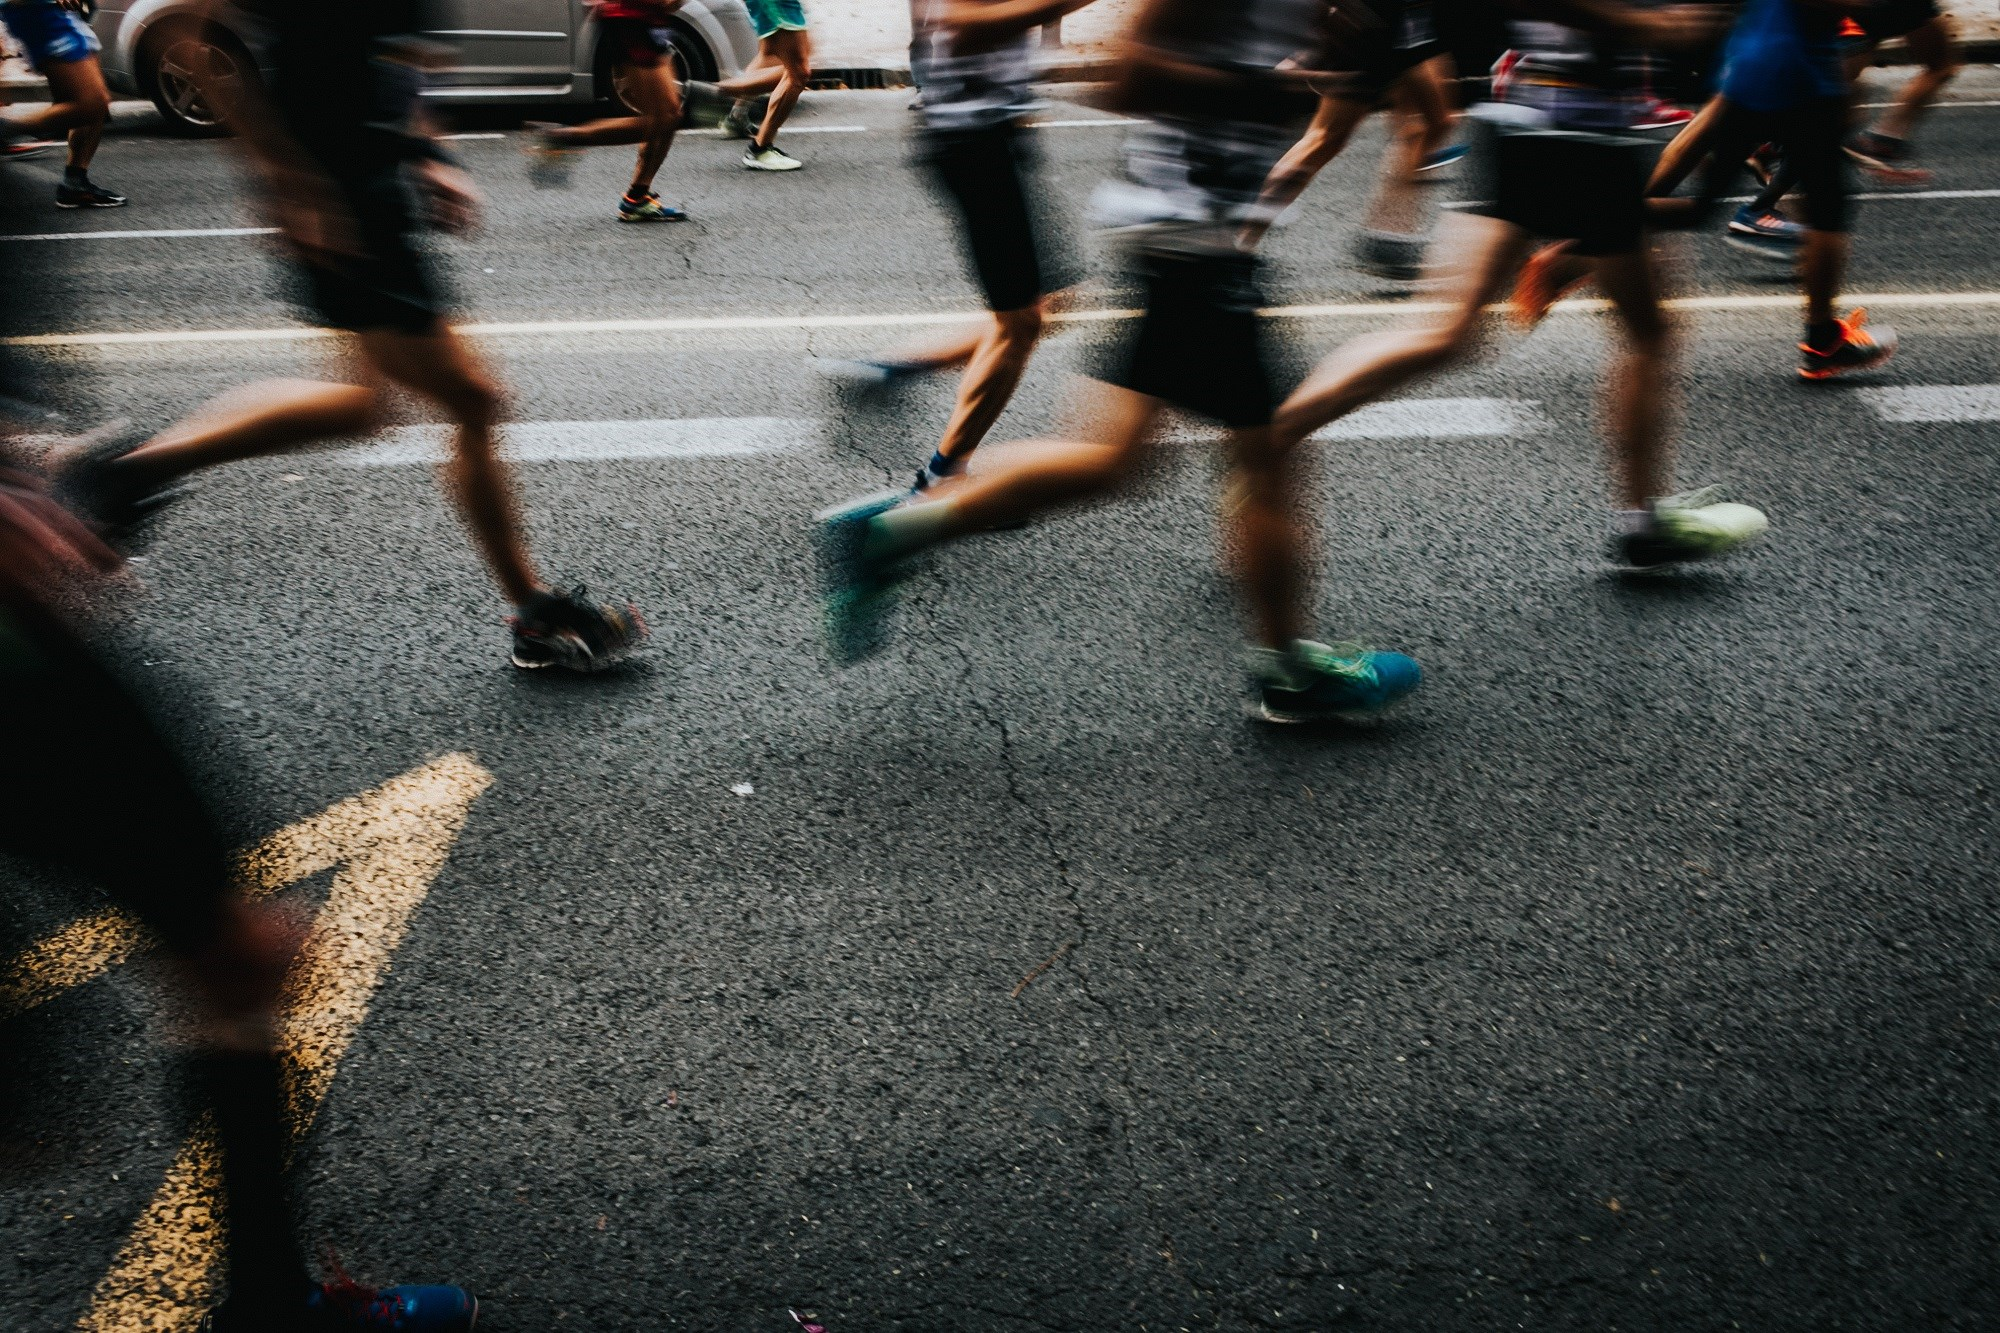 After the races, the serum concentrations of cardiac troponins I and T were significantly higher across running distances.